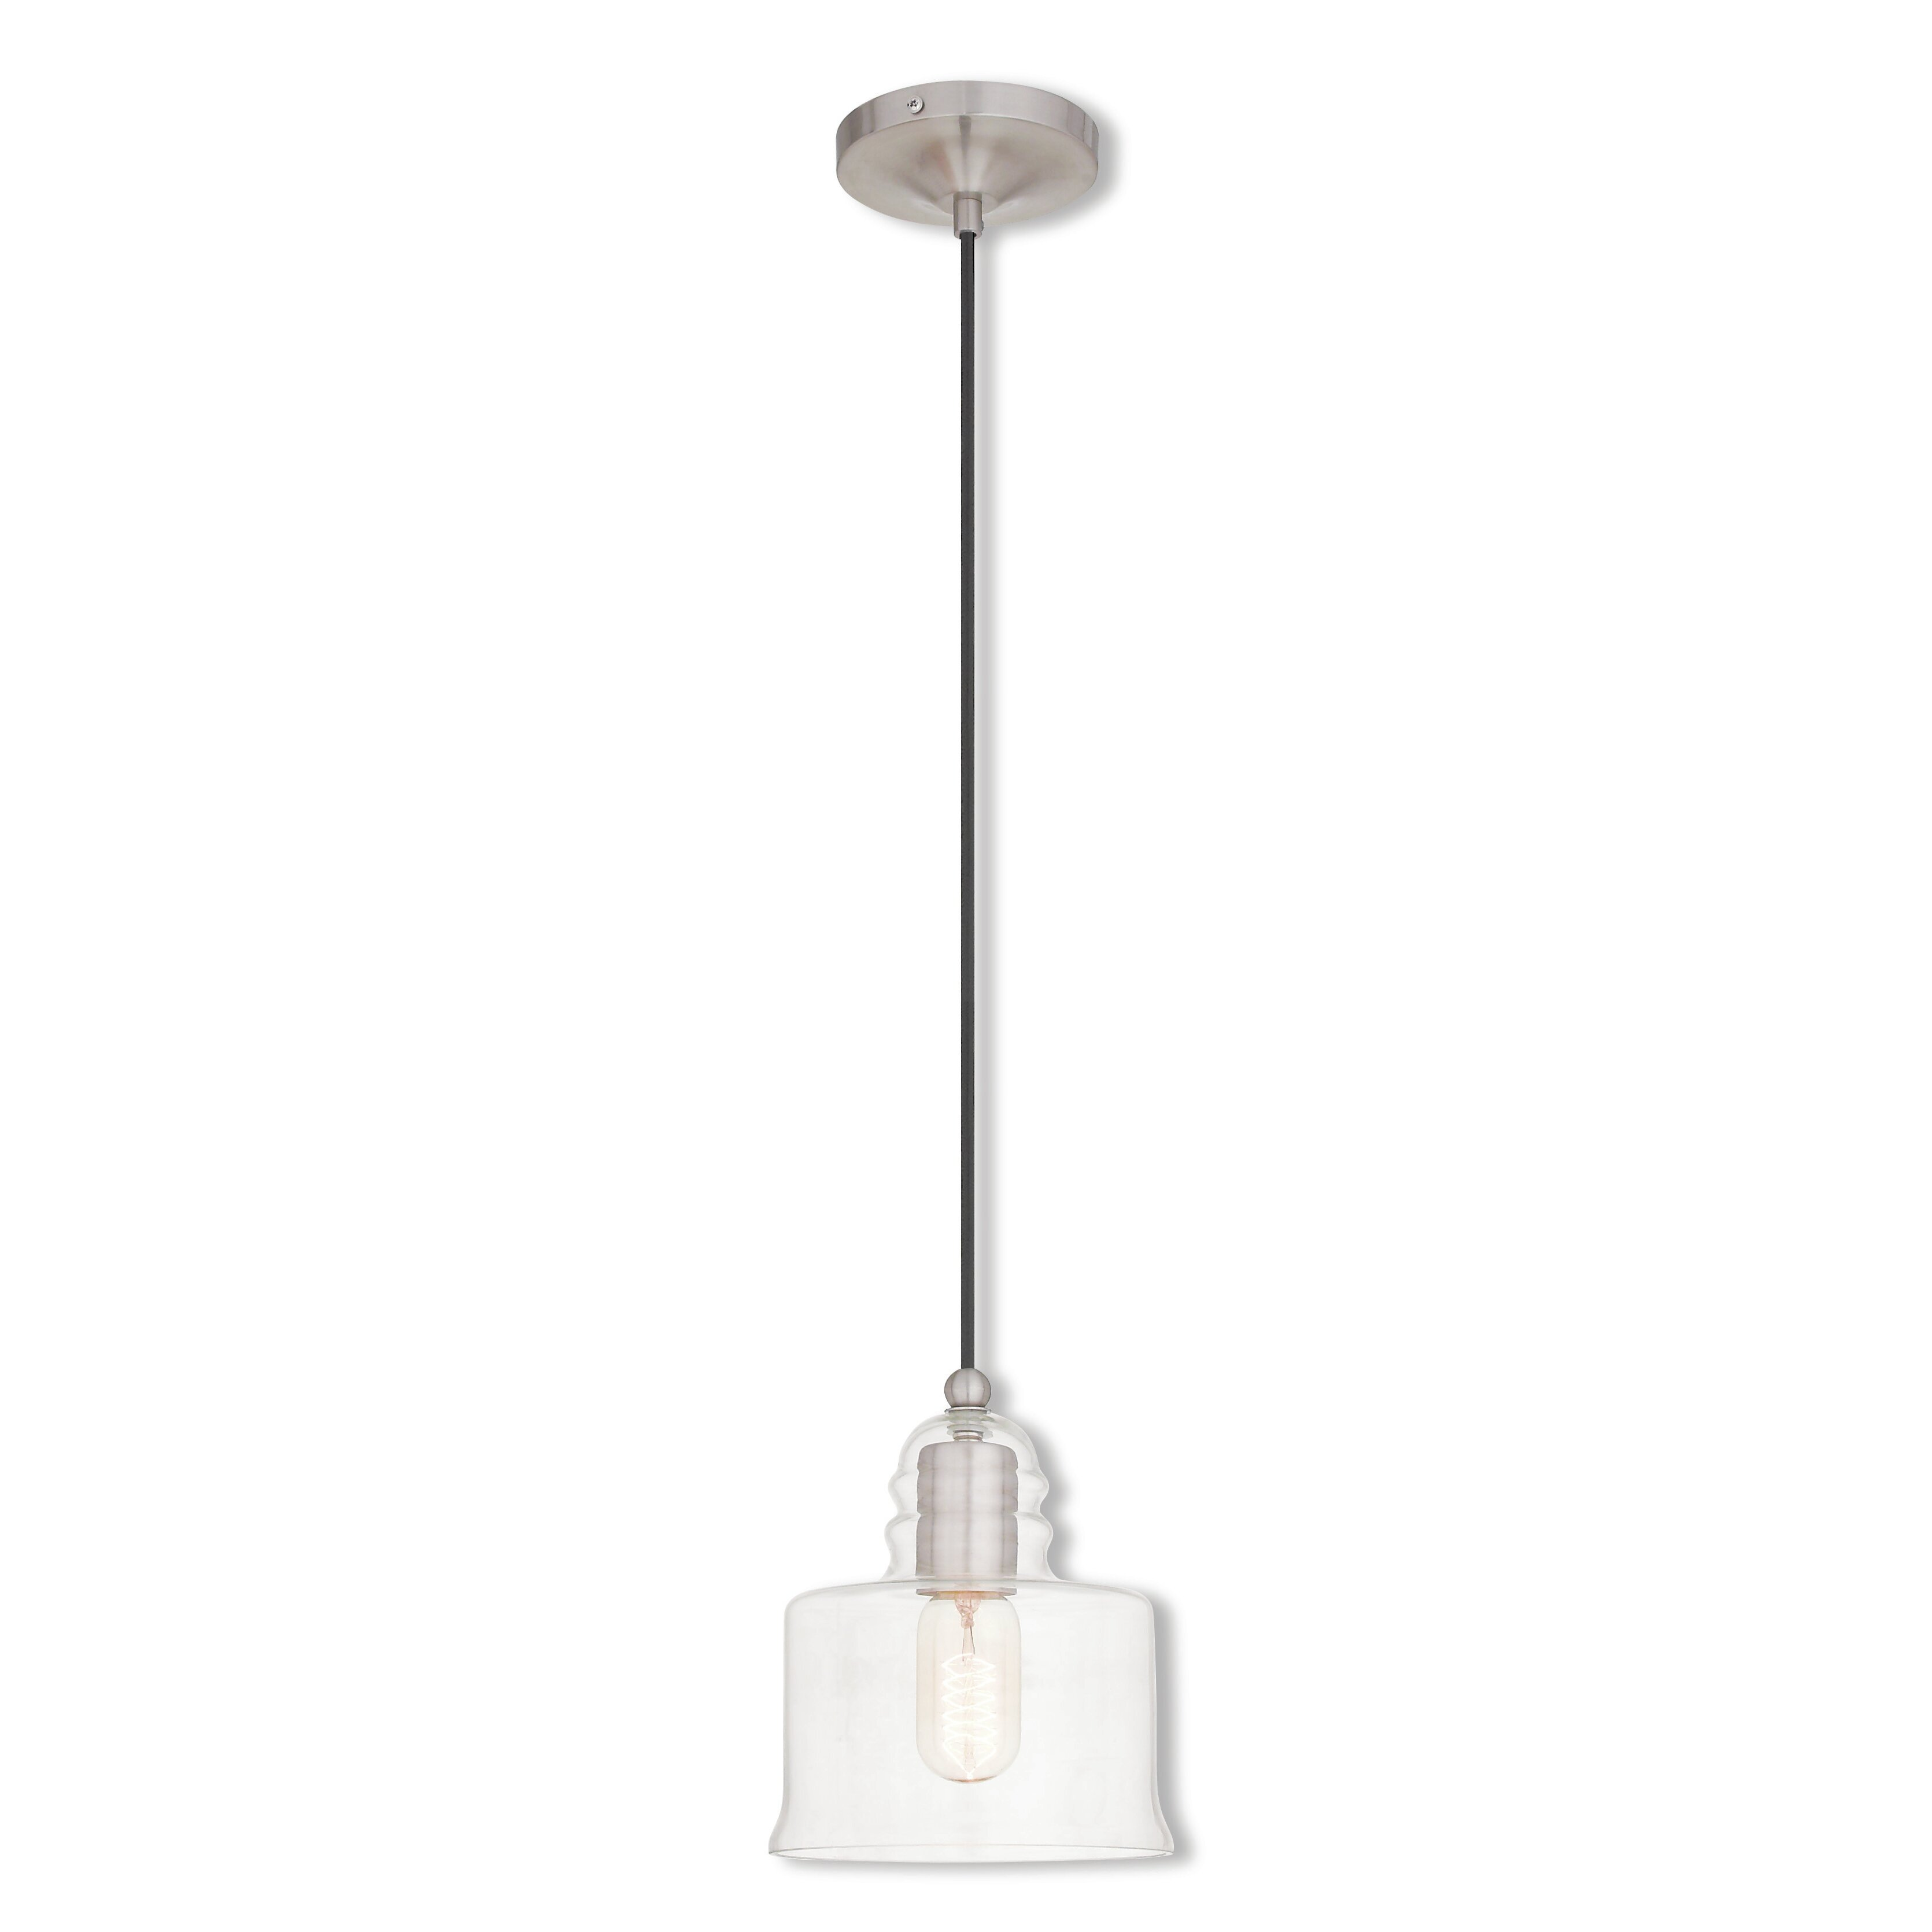 Art glass 1 light mini pendant by livex lighting